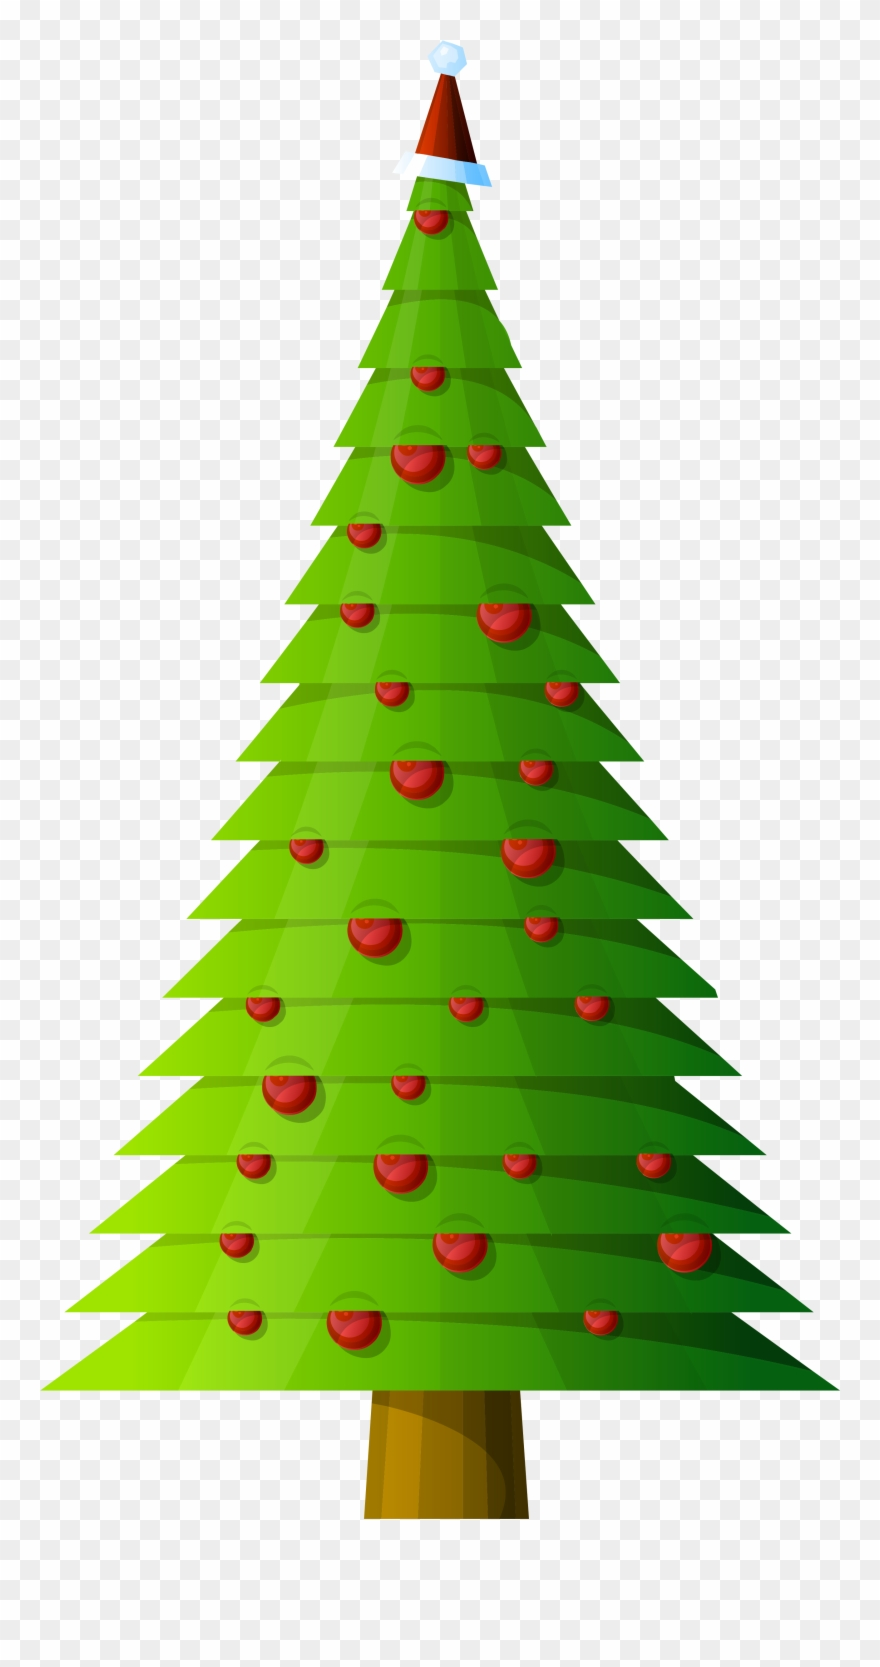 Graphic Royalty Free Christmas Tree Style Transparent.